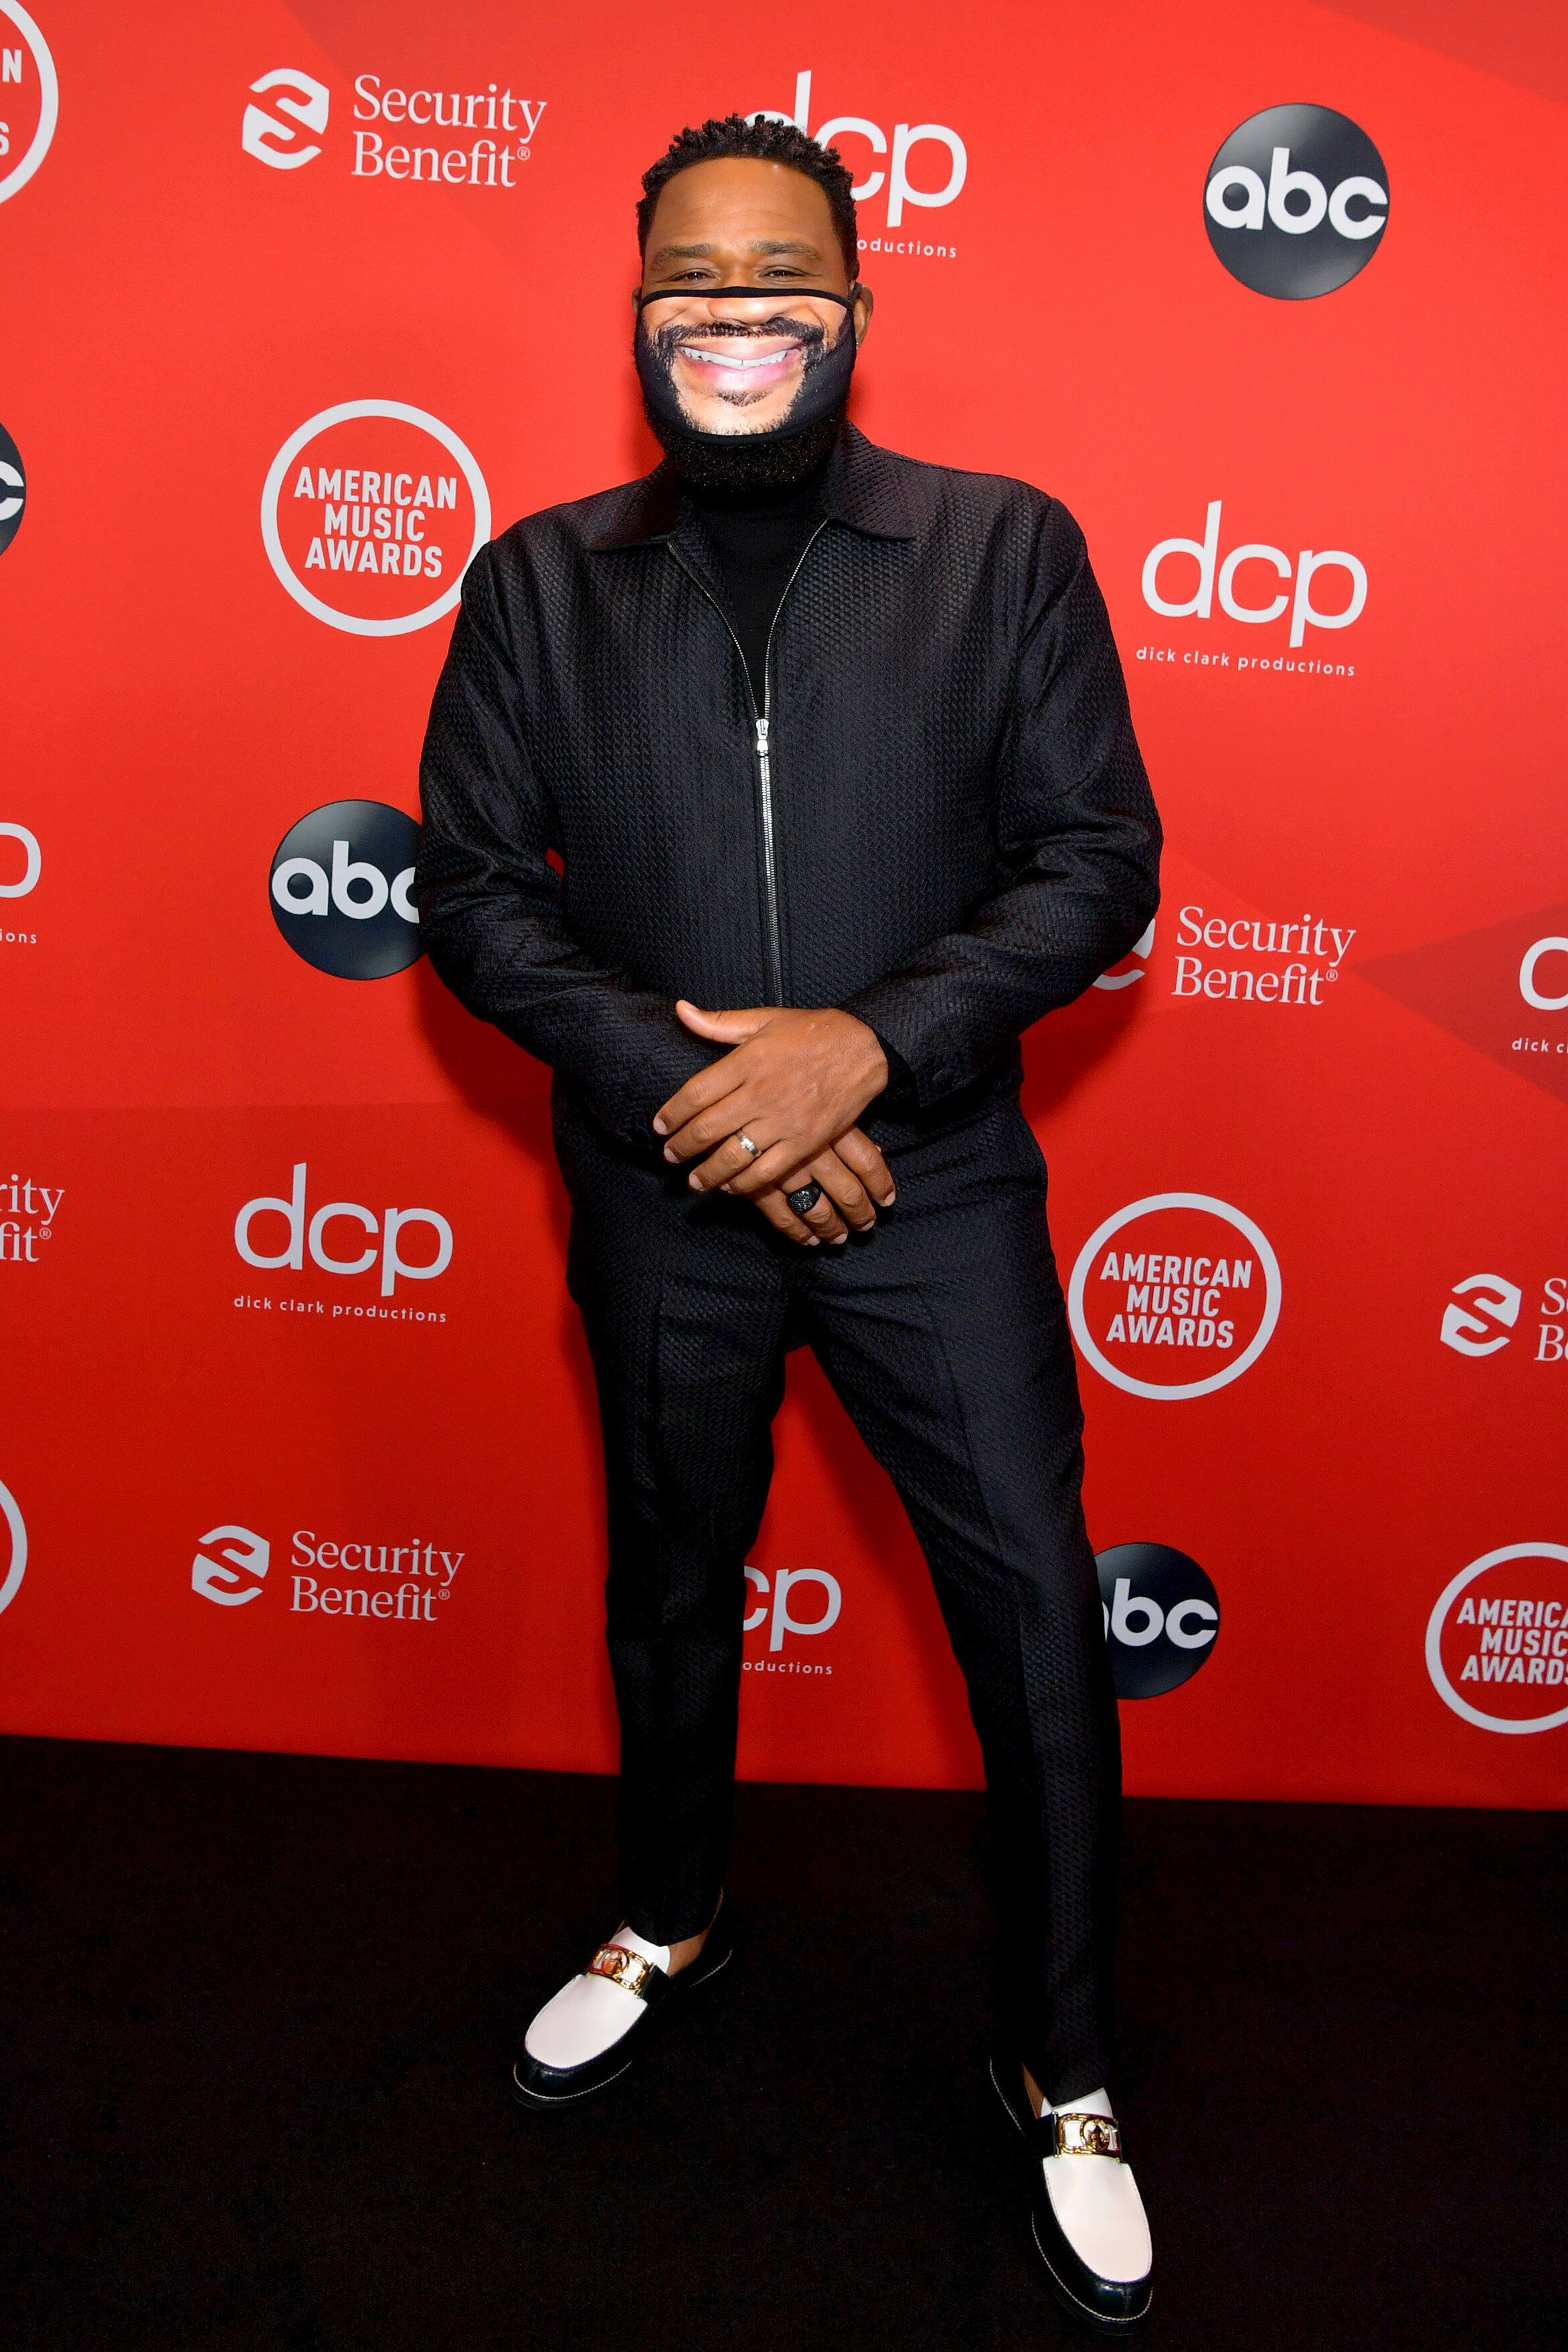 Anthony Anderson attends the 2020 American Music Awards at the Microsoft Theater on Sunday in Los Angeles.